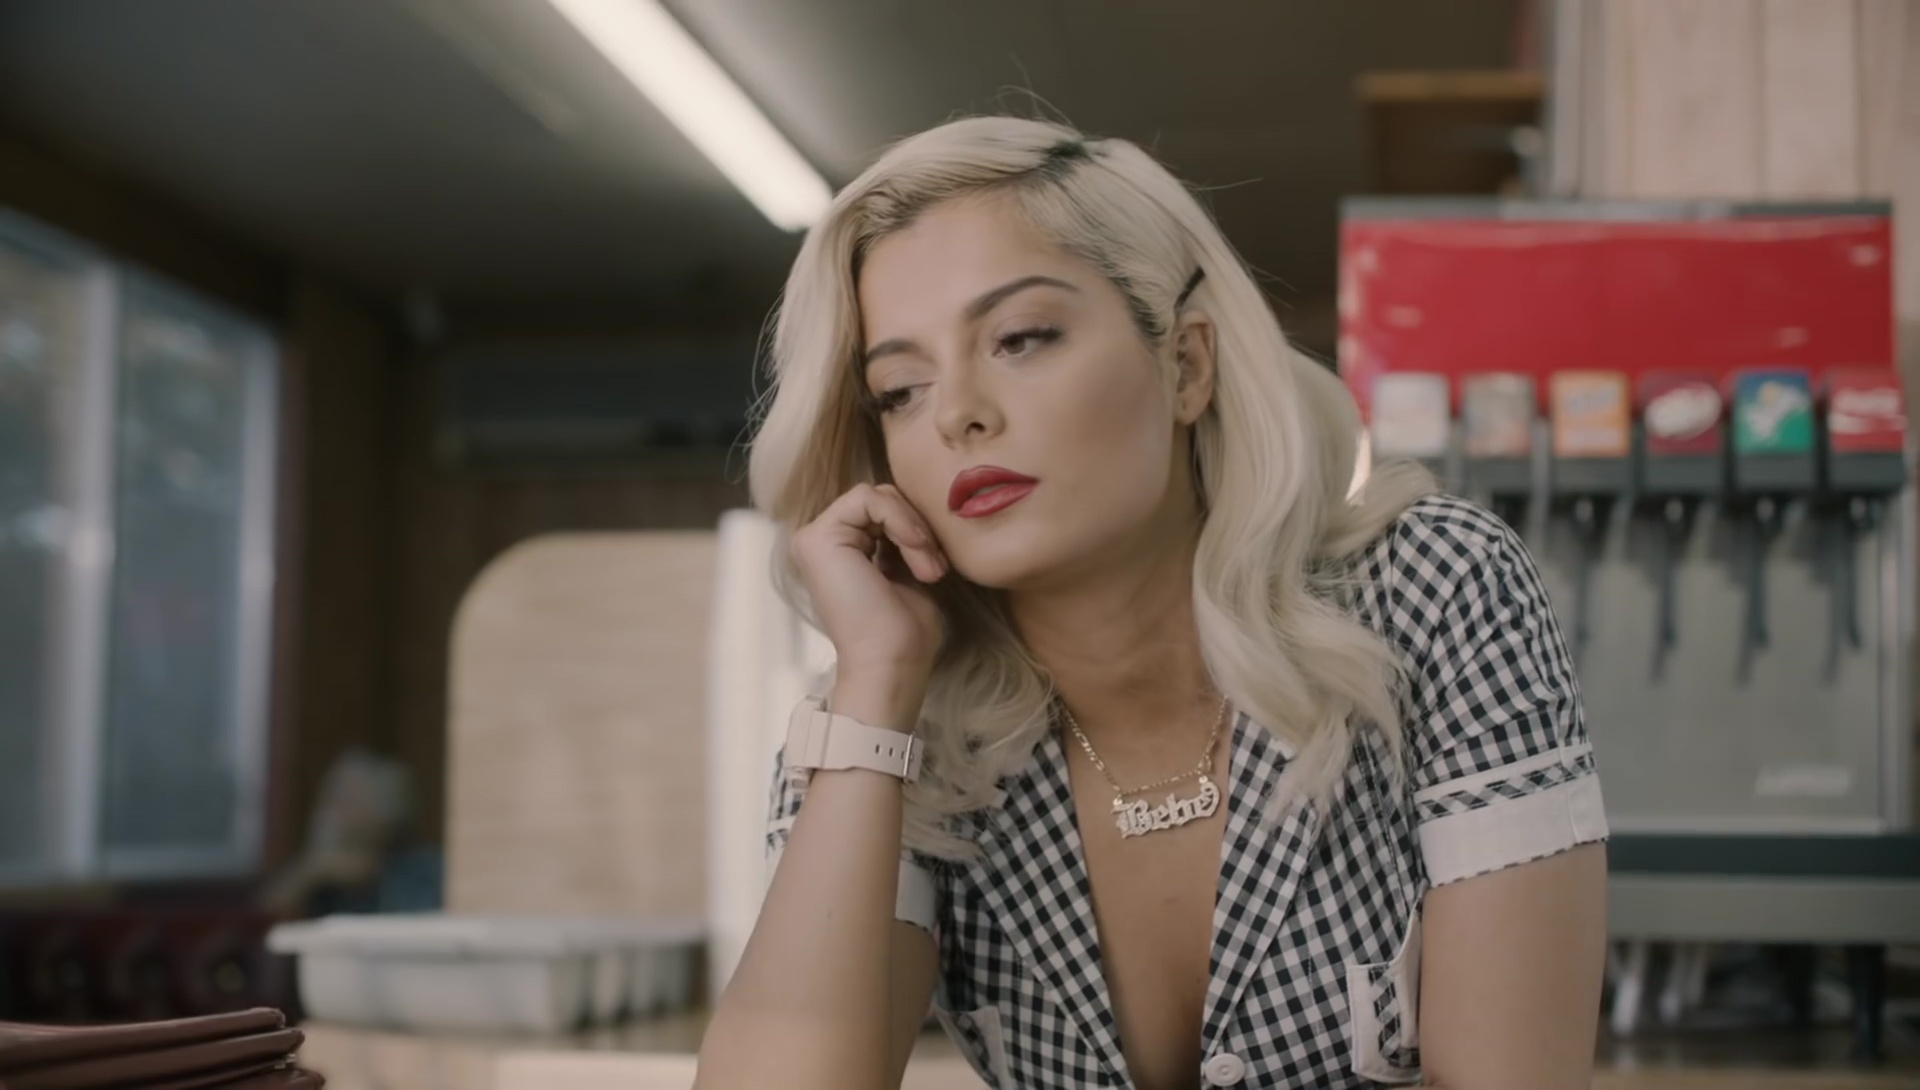 Is bebe rexha dating florida georgia line